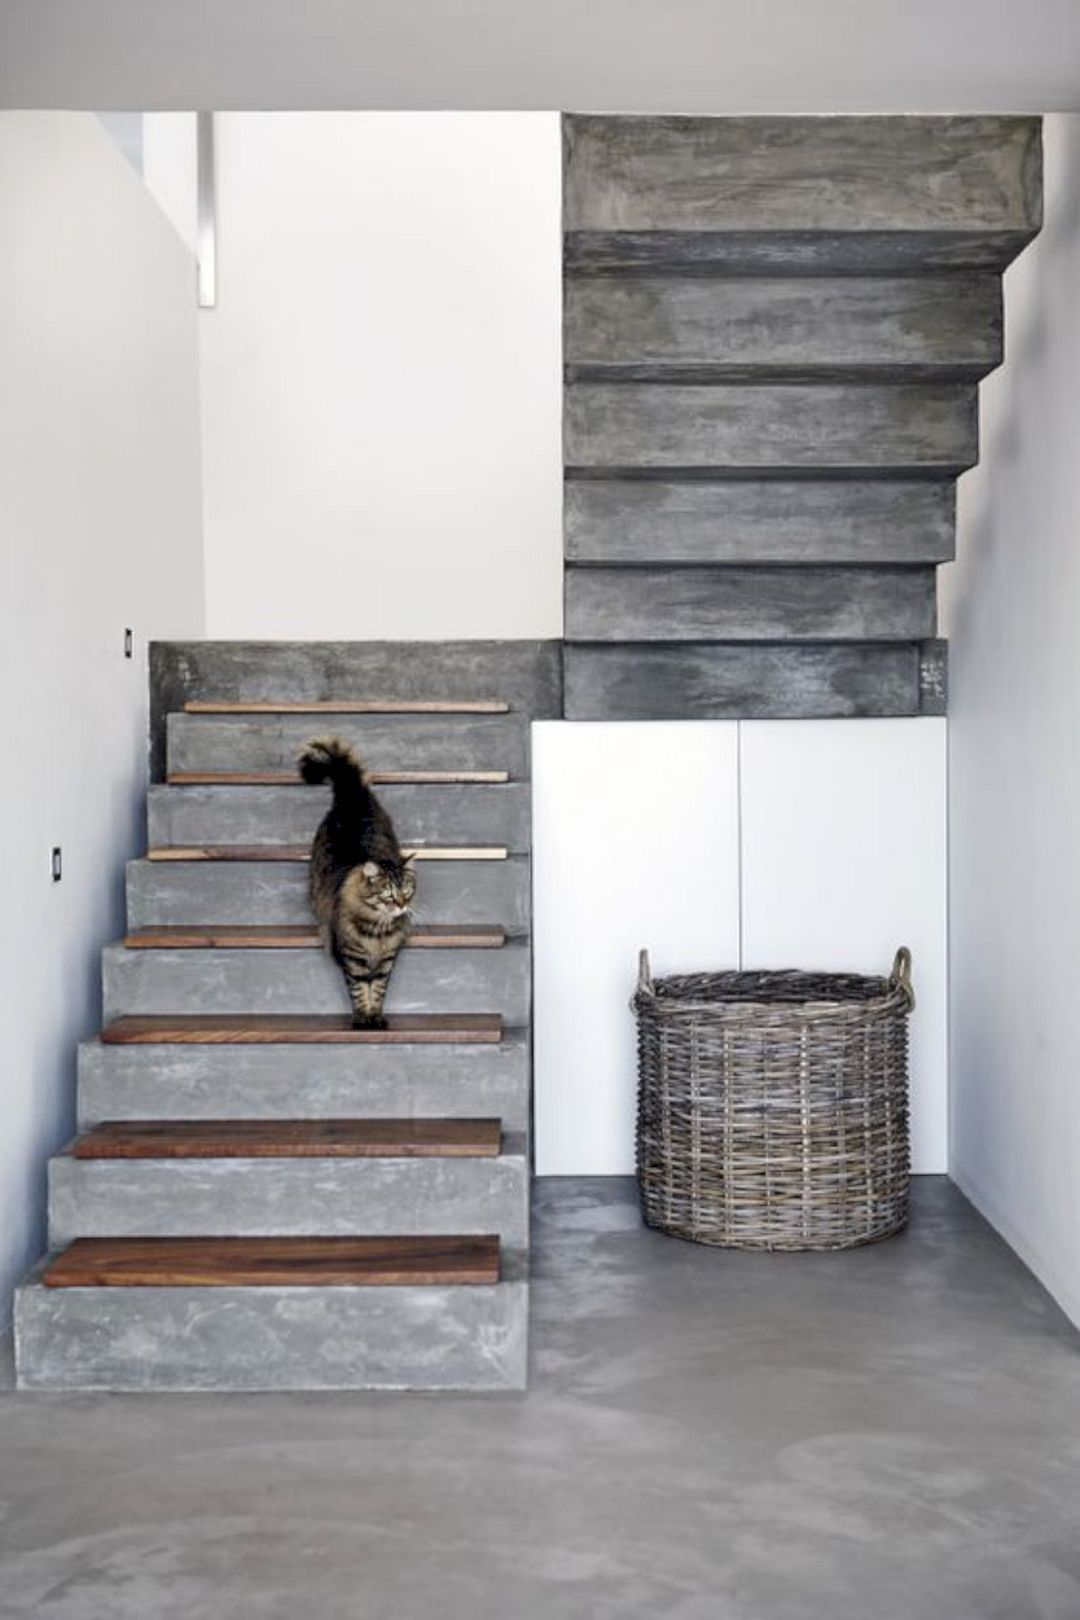 Merveilleux 16 Super Cool Concrete Staircase Ideas Https://www.futuristarchitecture.com/